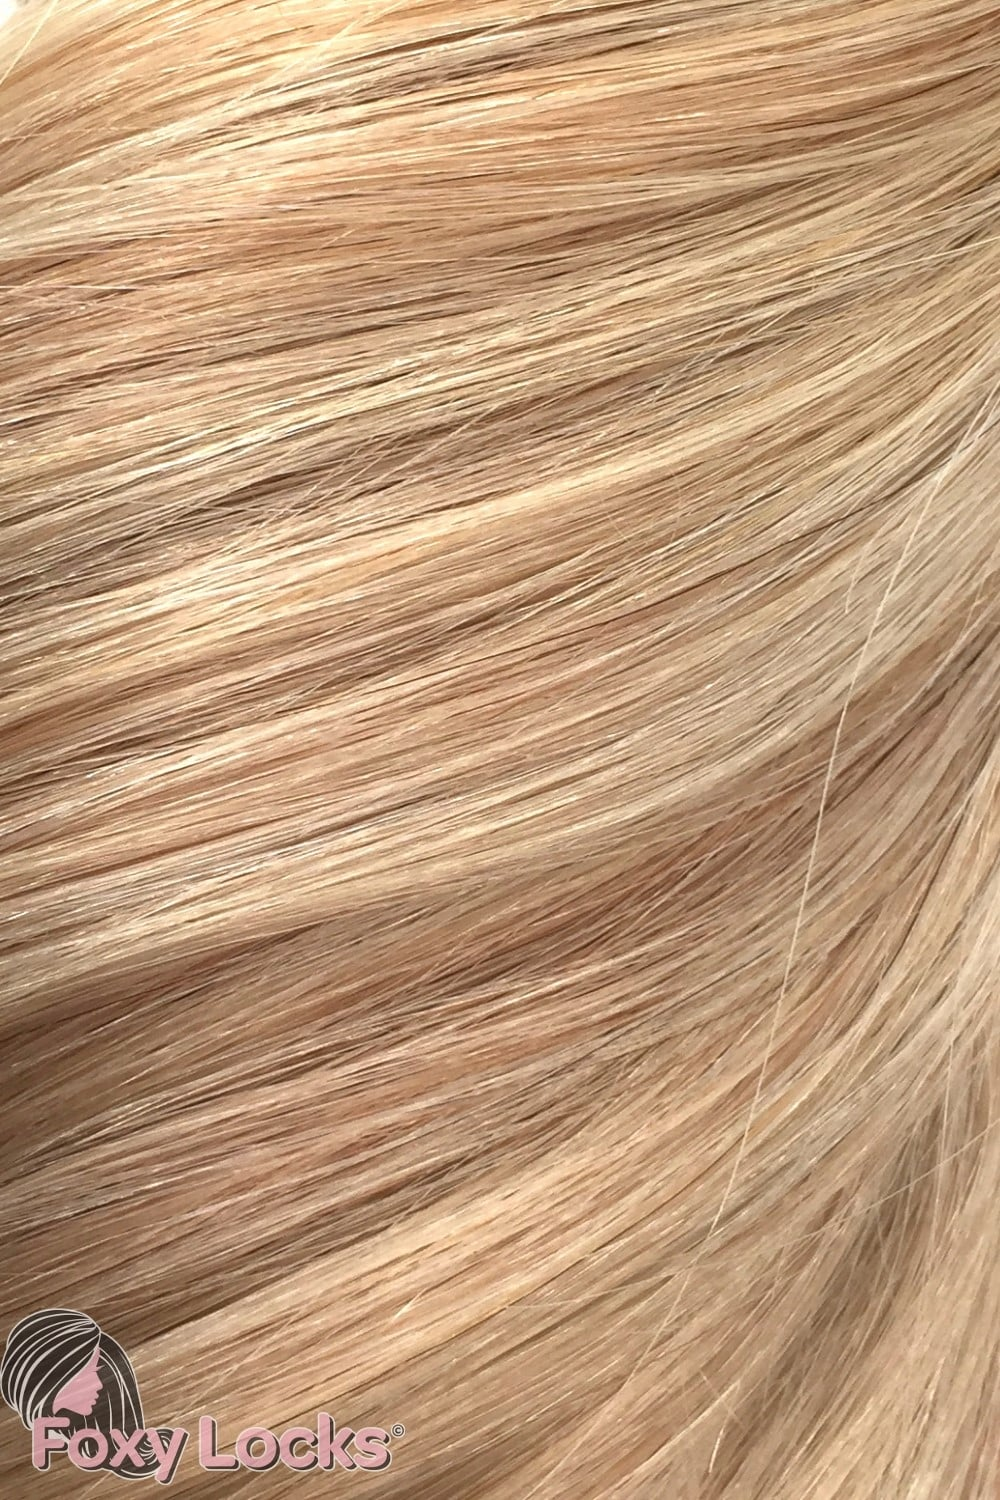 Blonde luxurious 24 clip in human hair extensions 280g sandy blonde luxurious 24 clip in human hair extensions 280g pmusecretfo Gallery